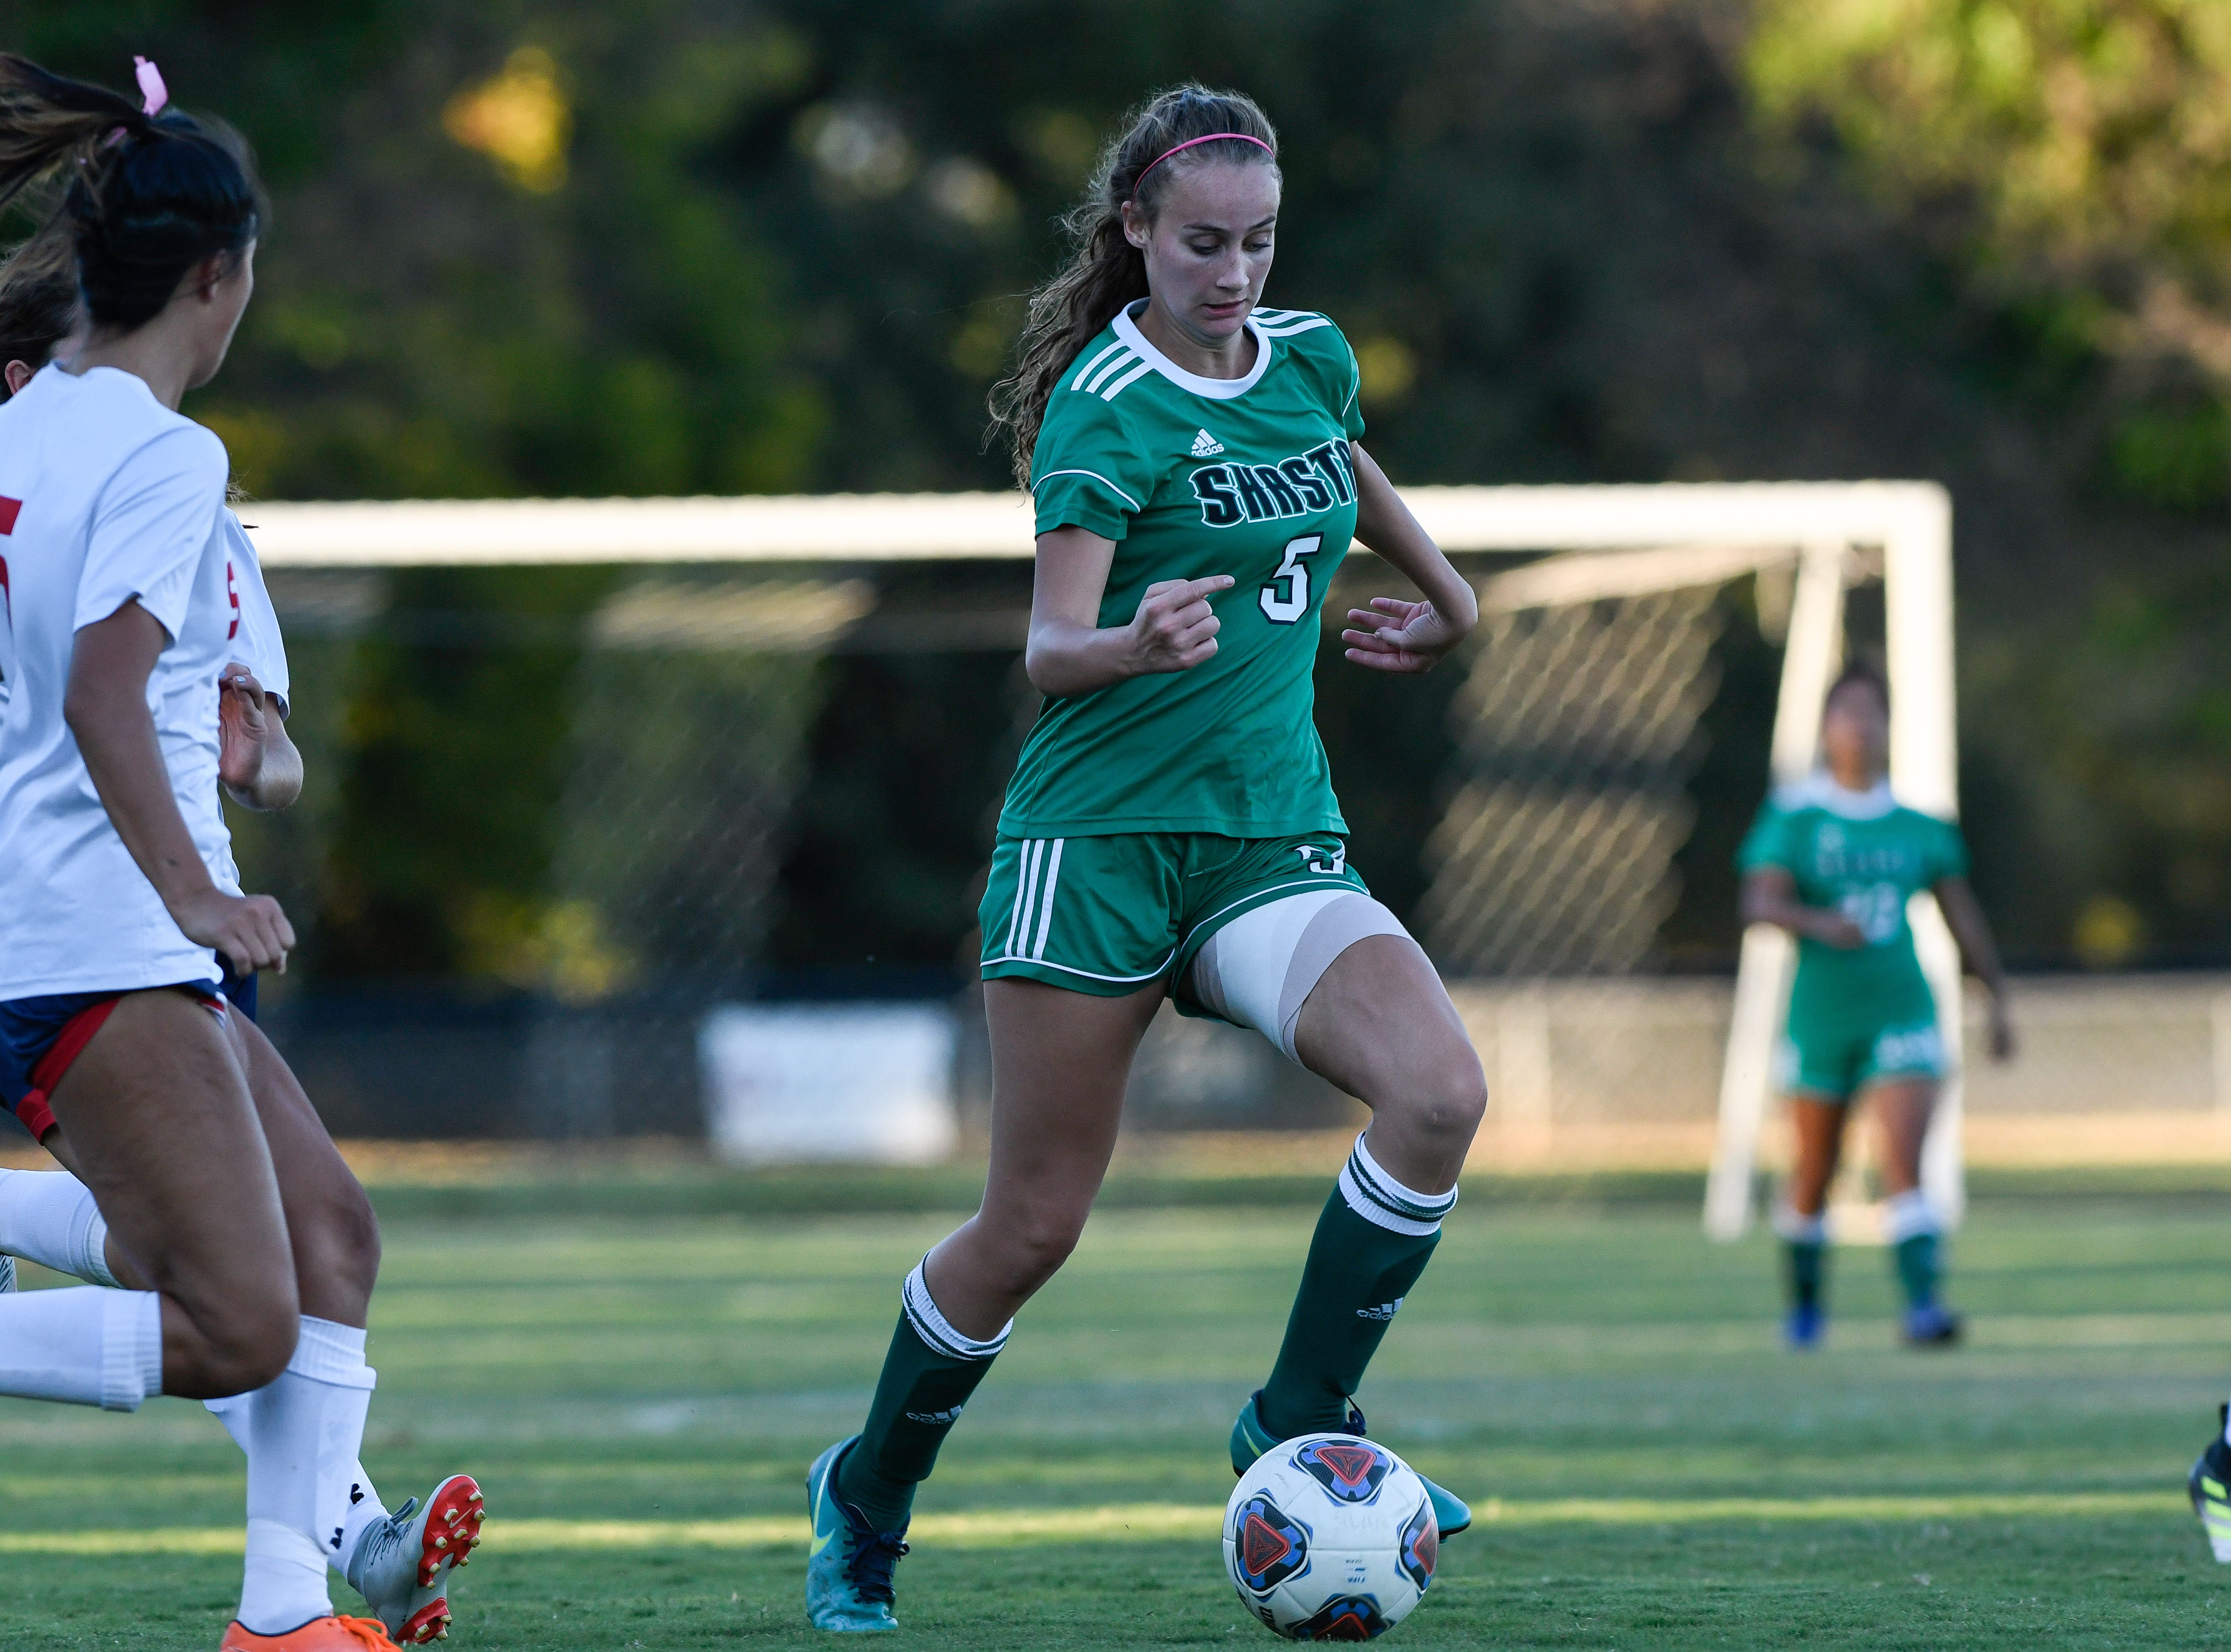 Jenna Monahan runs with the ball during the Knights' 1-1 tie against College of the Siskiyous on Friday, Oct. 12, 2018.